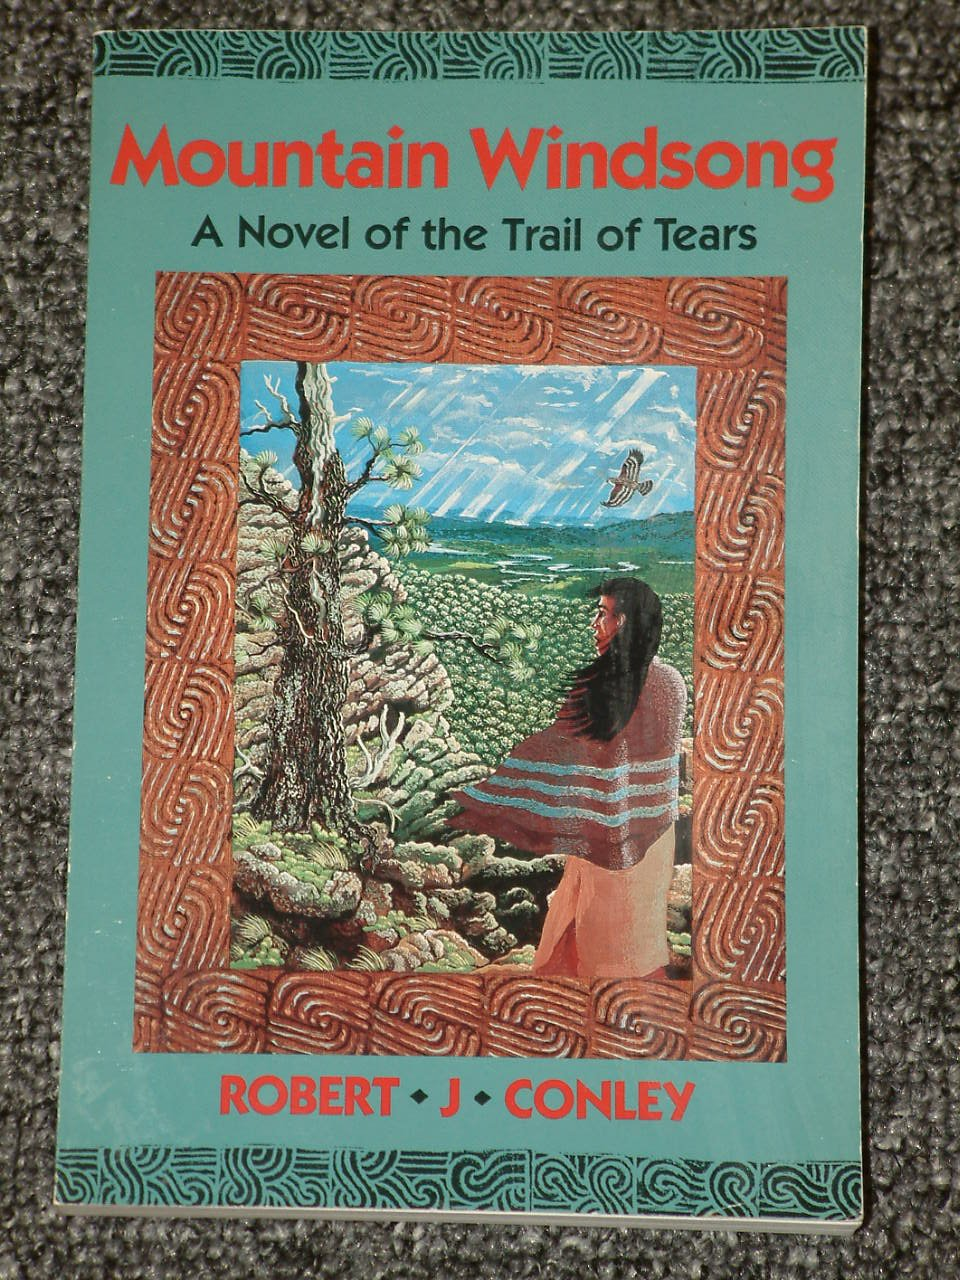 Mountain Windsong A Novel of the Trail of Tears by Robert J. Conley